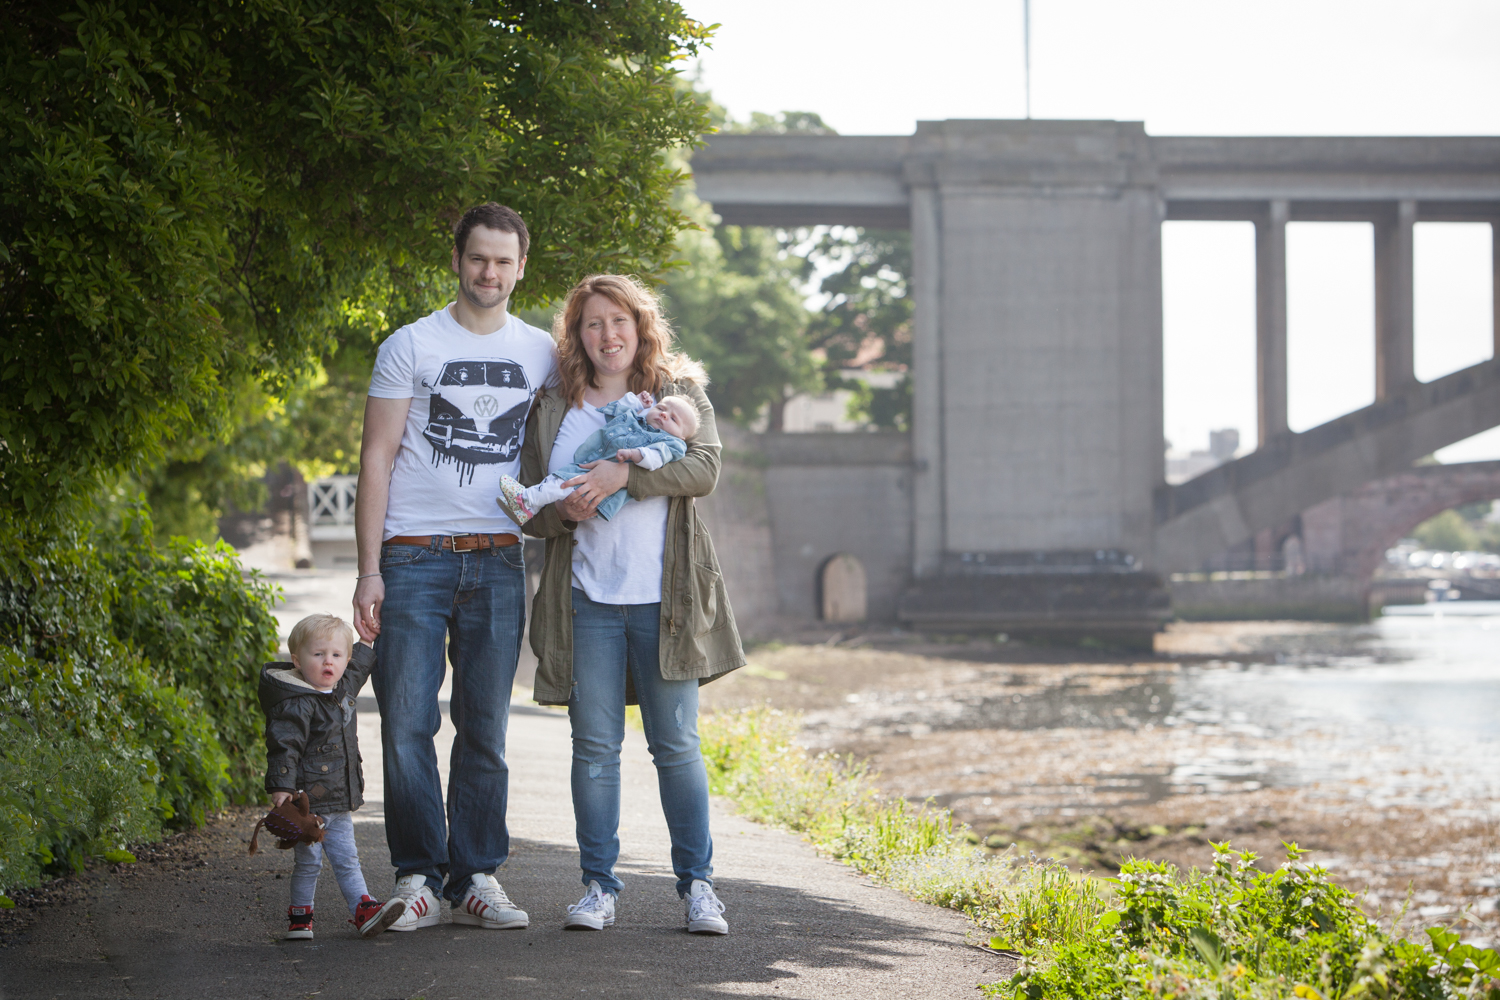 PICTORIAL_BERWICK_child-location-family-session-photoshoot-outdoor-park-river-tweed-bridge-1712.jpg